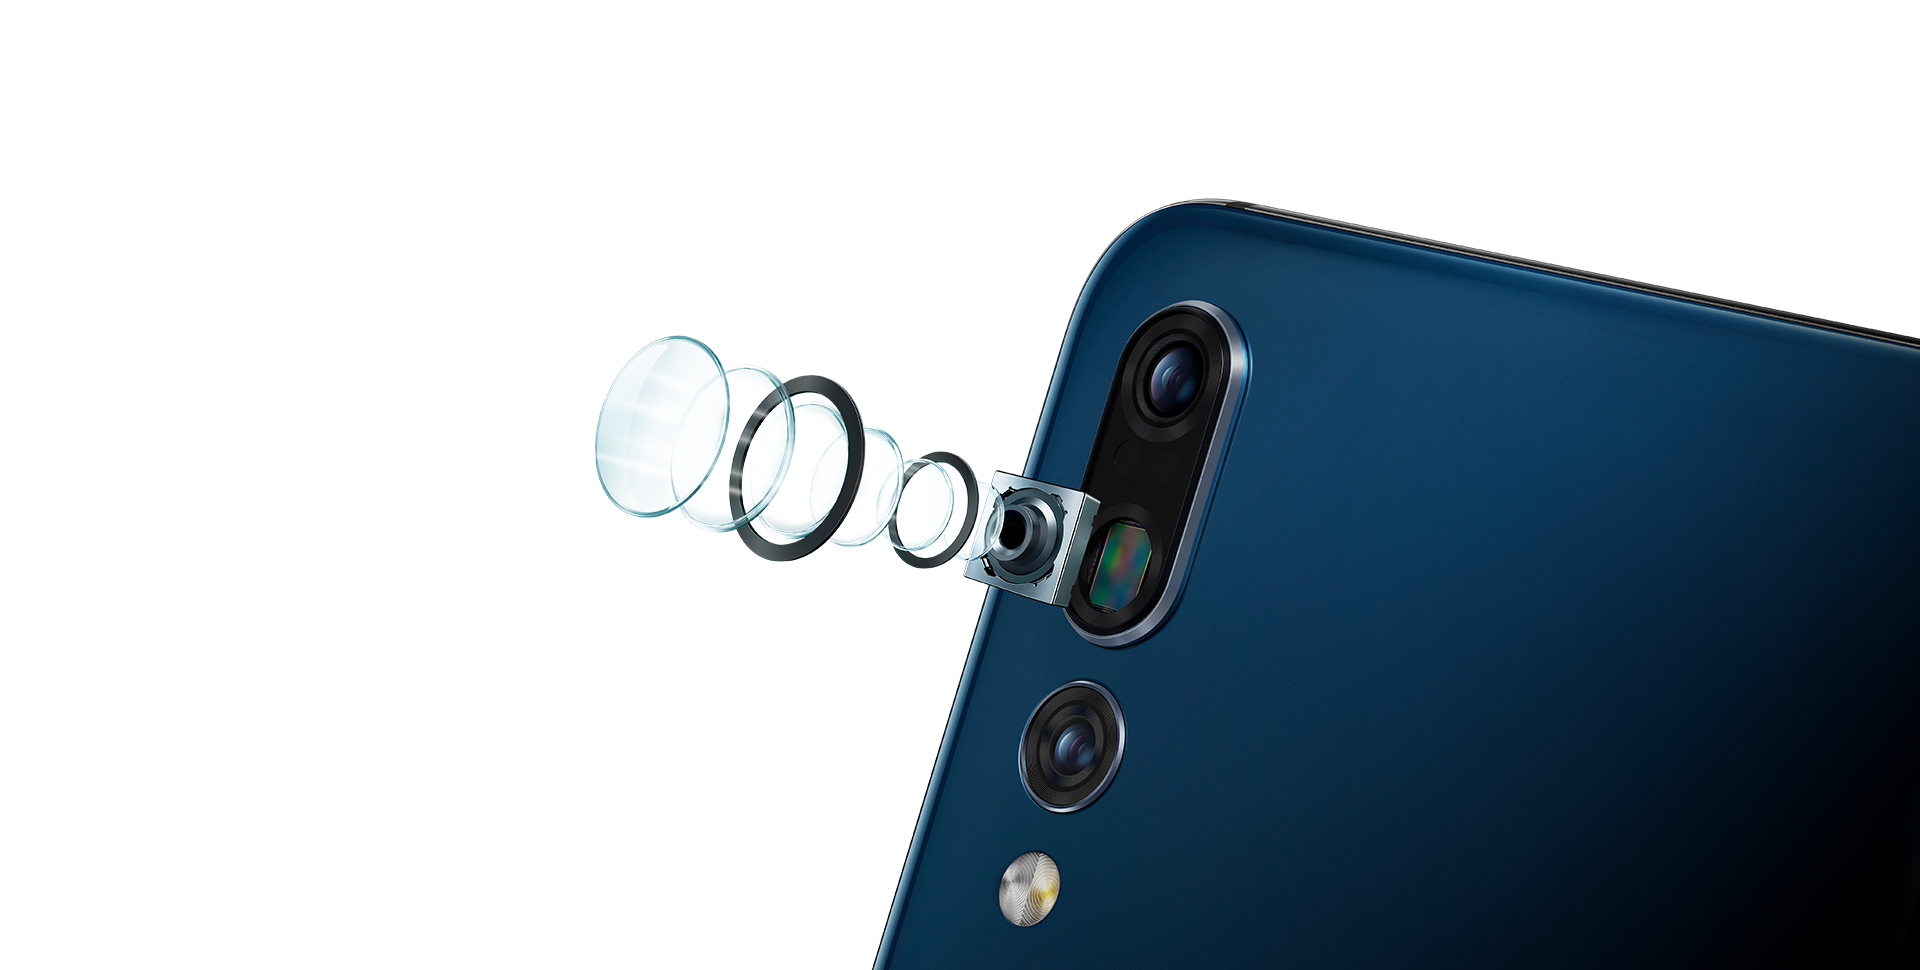 https://consumer-img.huawei.com/content/dam/huawei-cbg-campaign/2018/p20-pro/common/img/camera/huawei-p20-pro-lecia-triple-camera-40-million-pixels-original.jpg